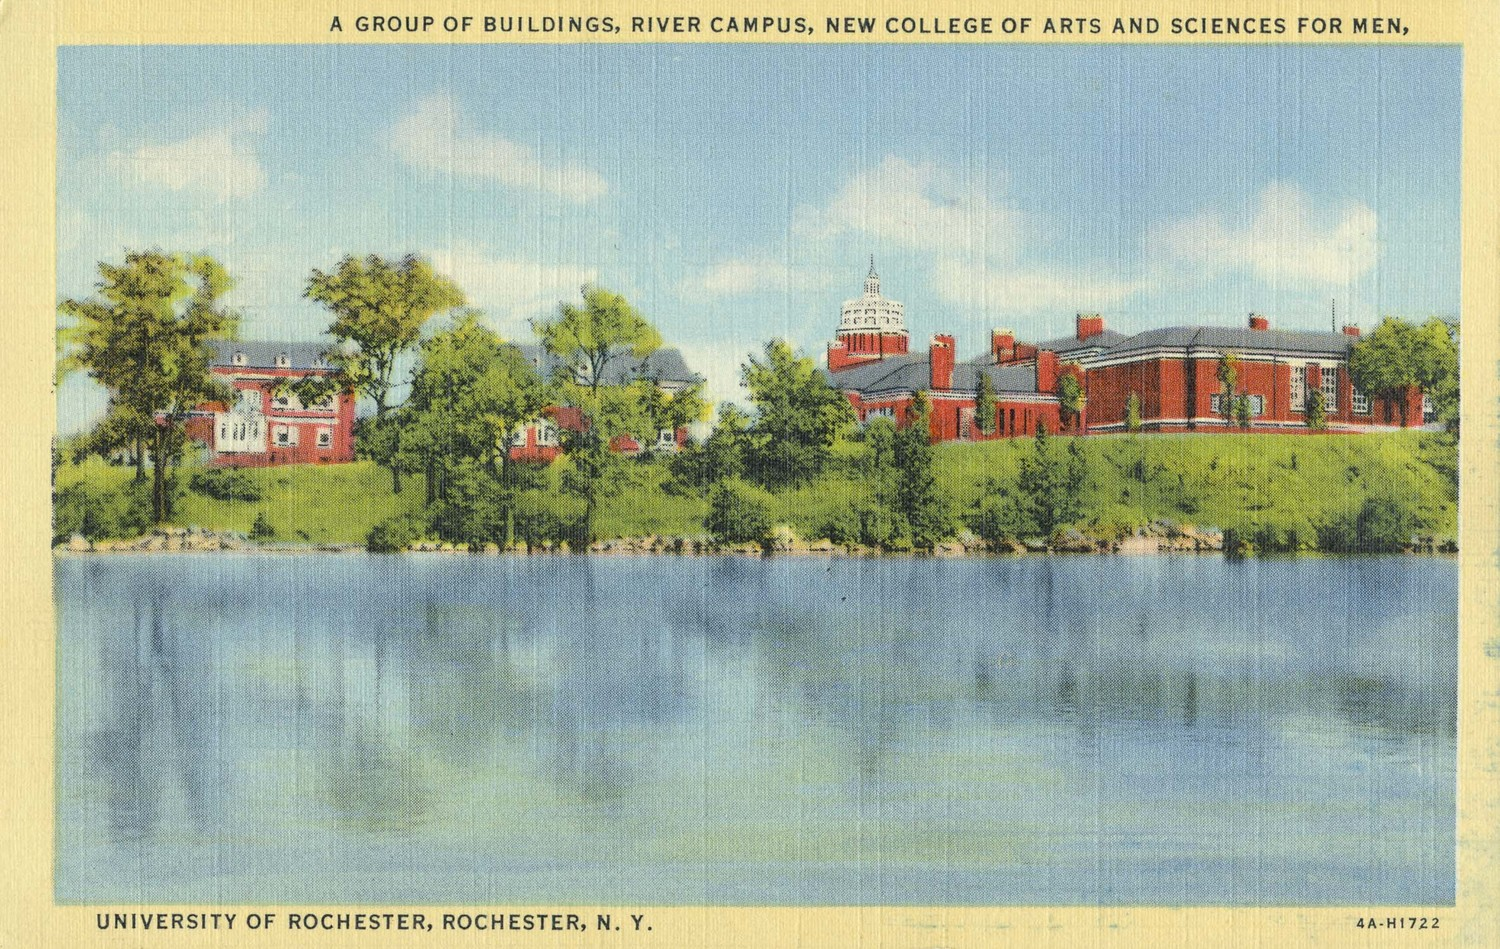 A Group of Buildings, River Campus, New College of Arts and Sciences for Men.